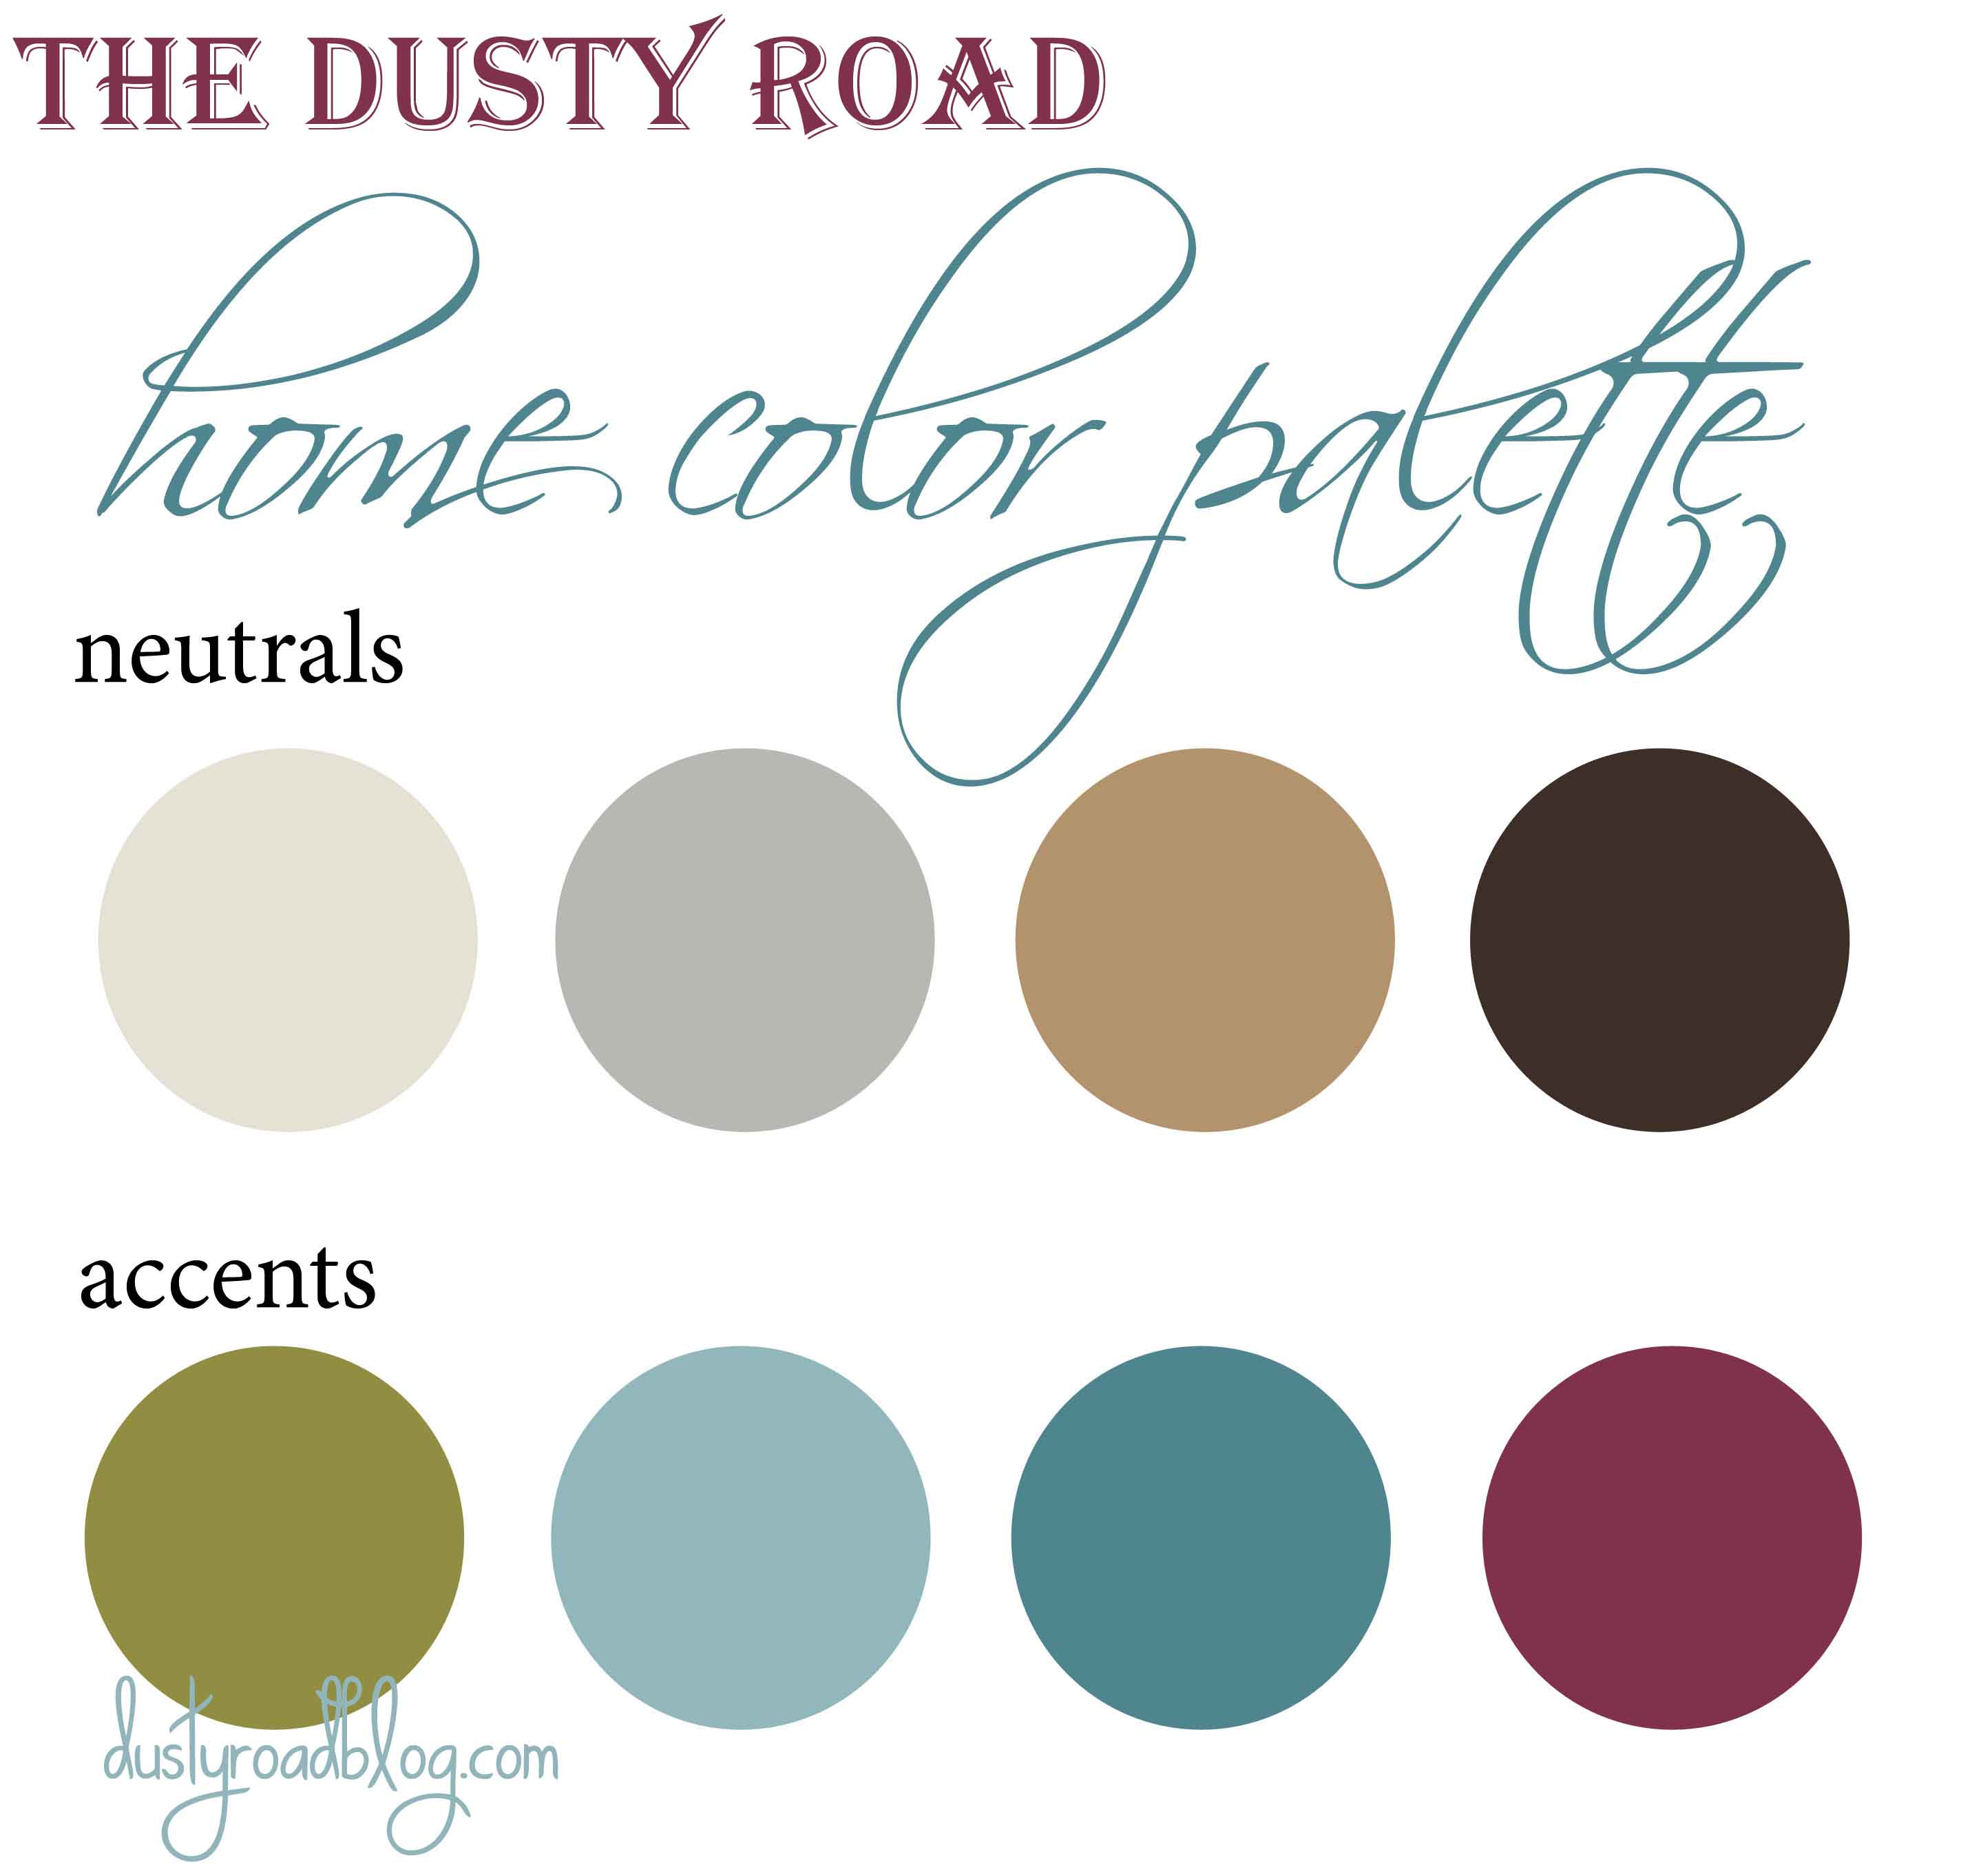 Home color palette home sweet home pinterest for Color palettes for home interior